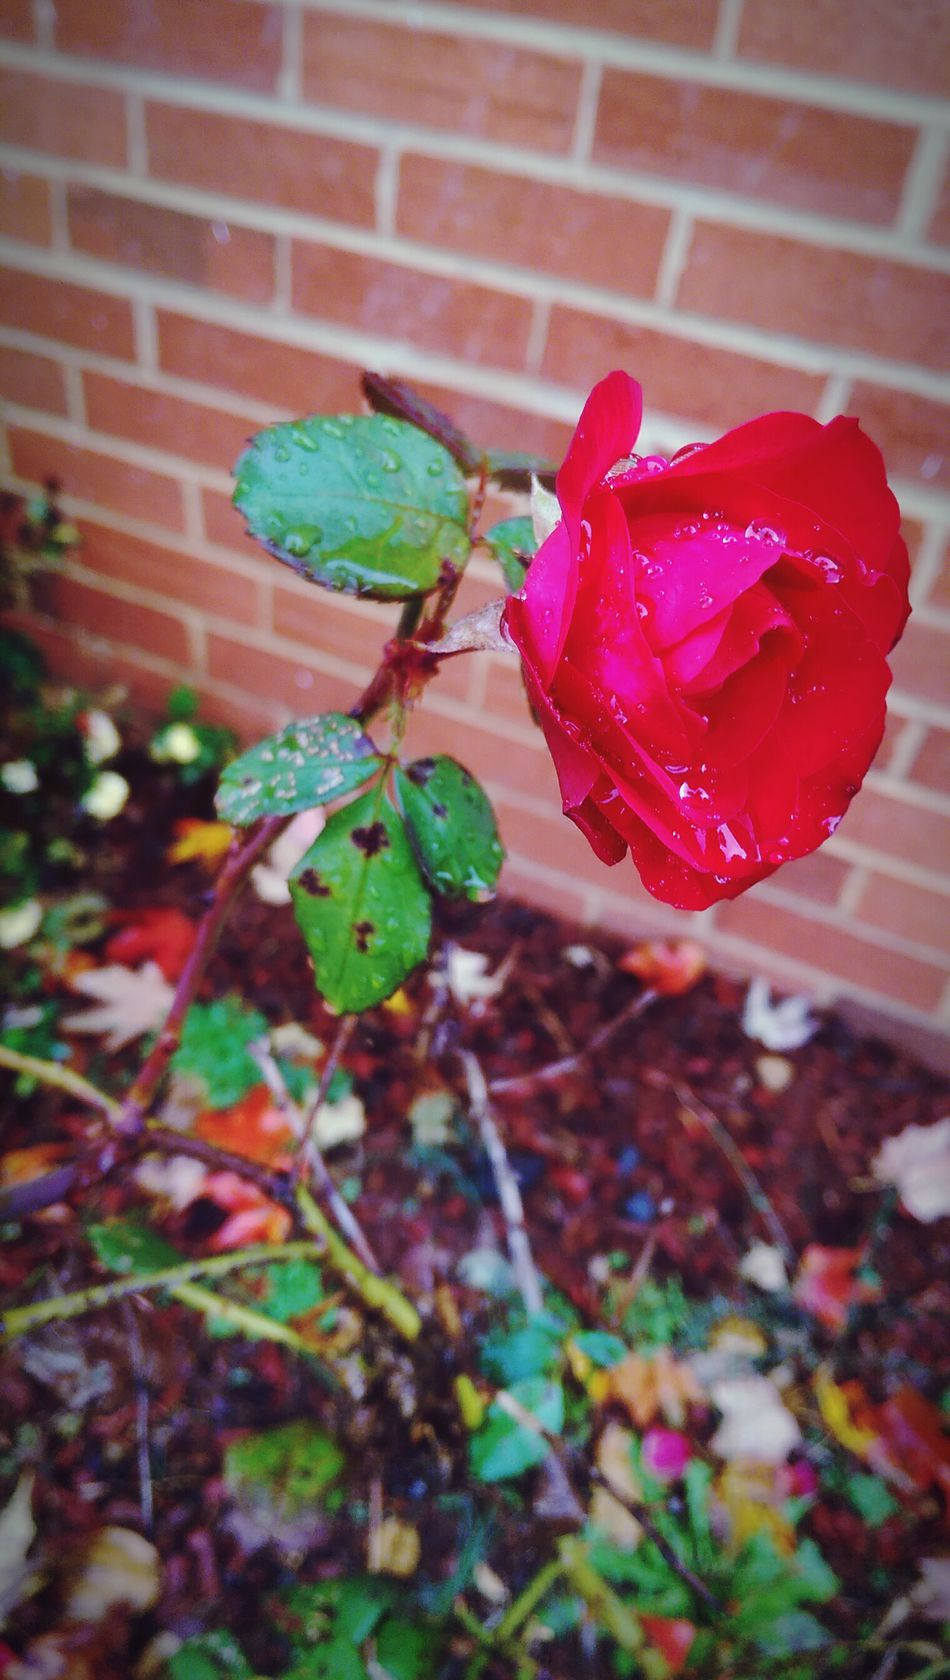 Roses🌹 Rosé Rose🌹 Red Nature Flower Beautiful Beauty Natural Pic2 Different Angle Pic Rain DeadRoses Rosey Check This Out Relaxing Auttumn Rainy Colored Closeup